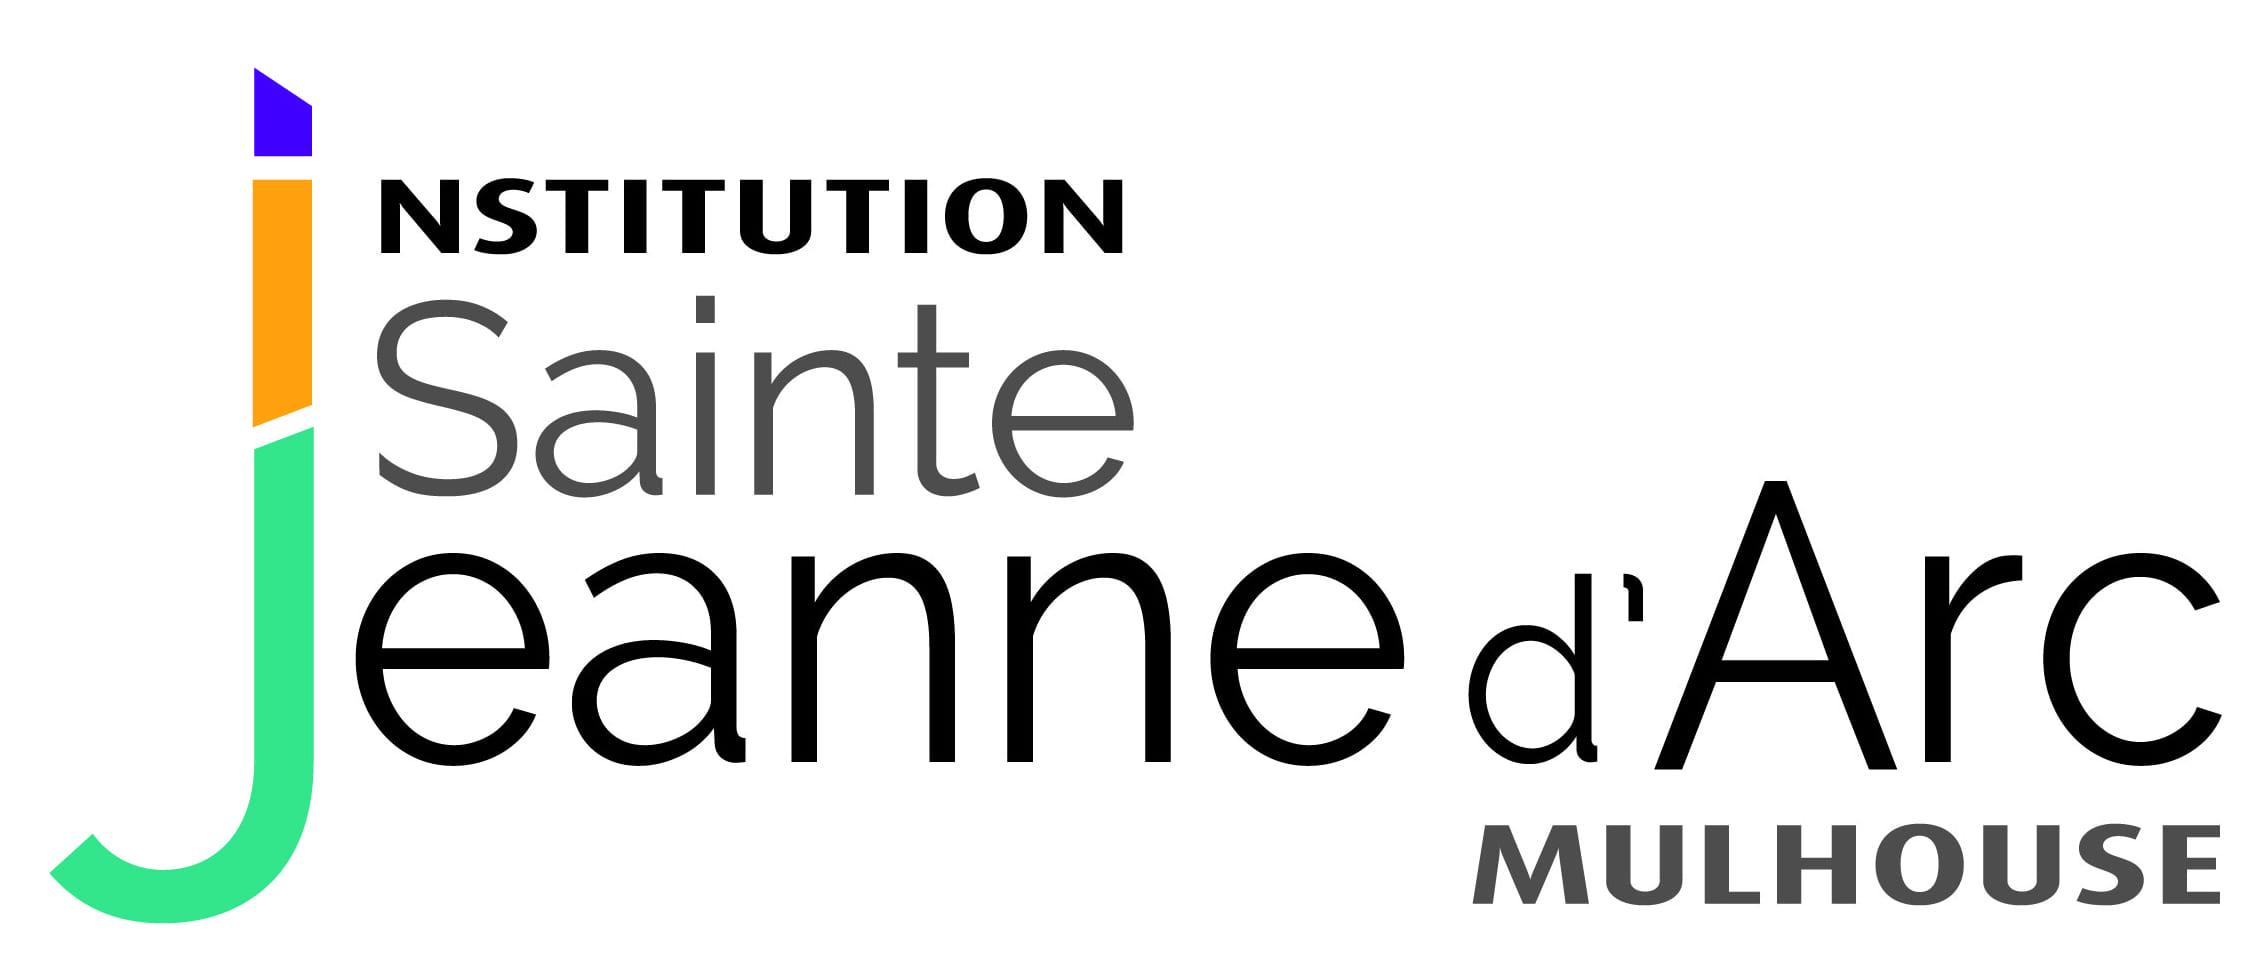 Institution-sainte-jeanne-d-arc-Mulhouse-new